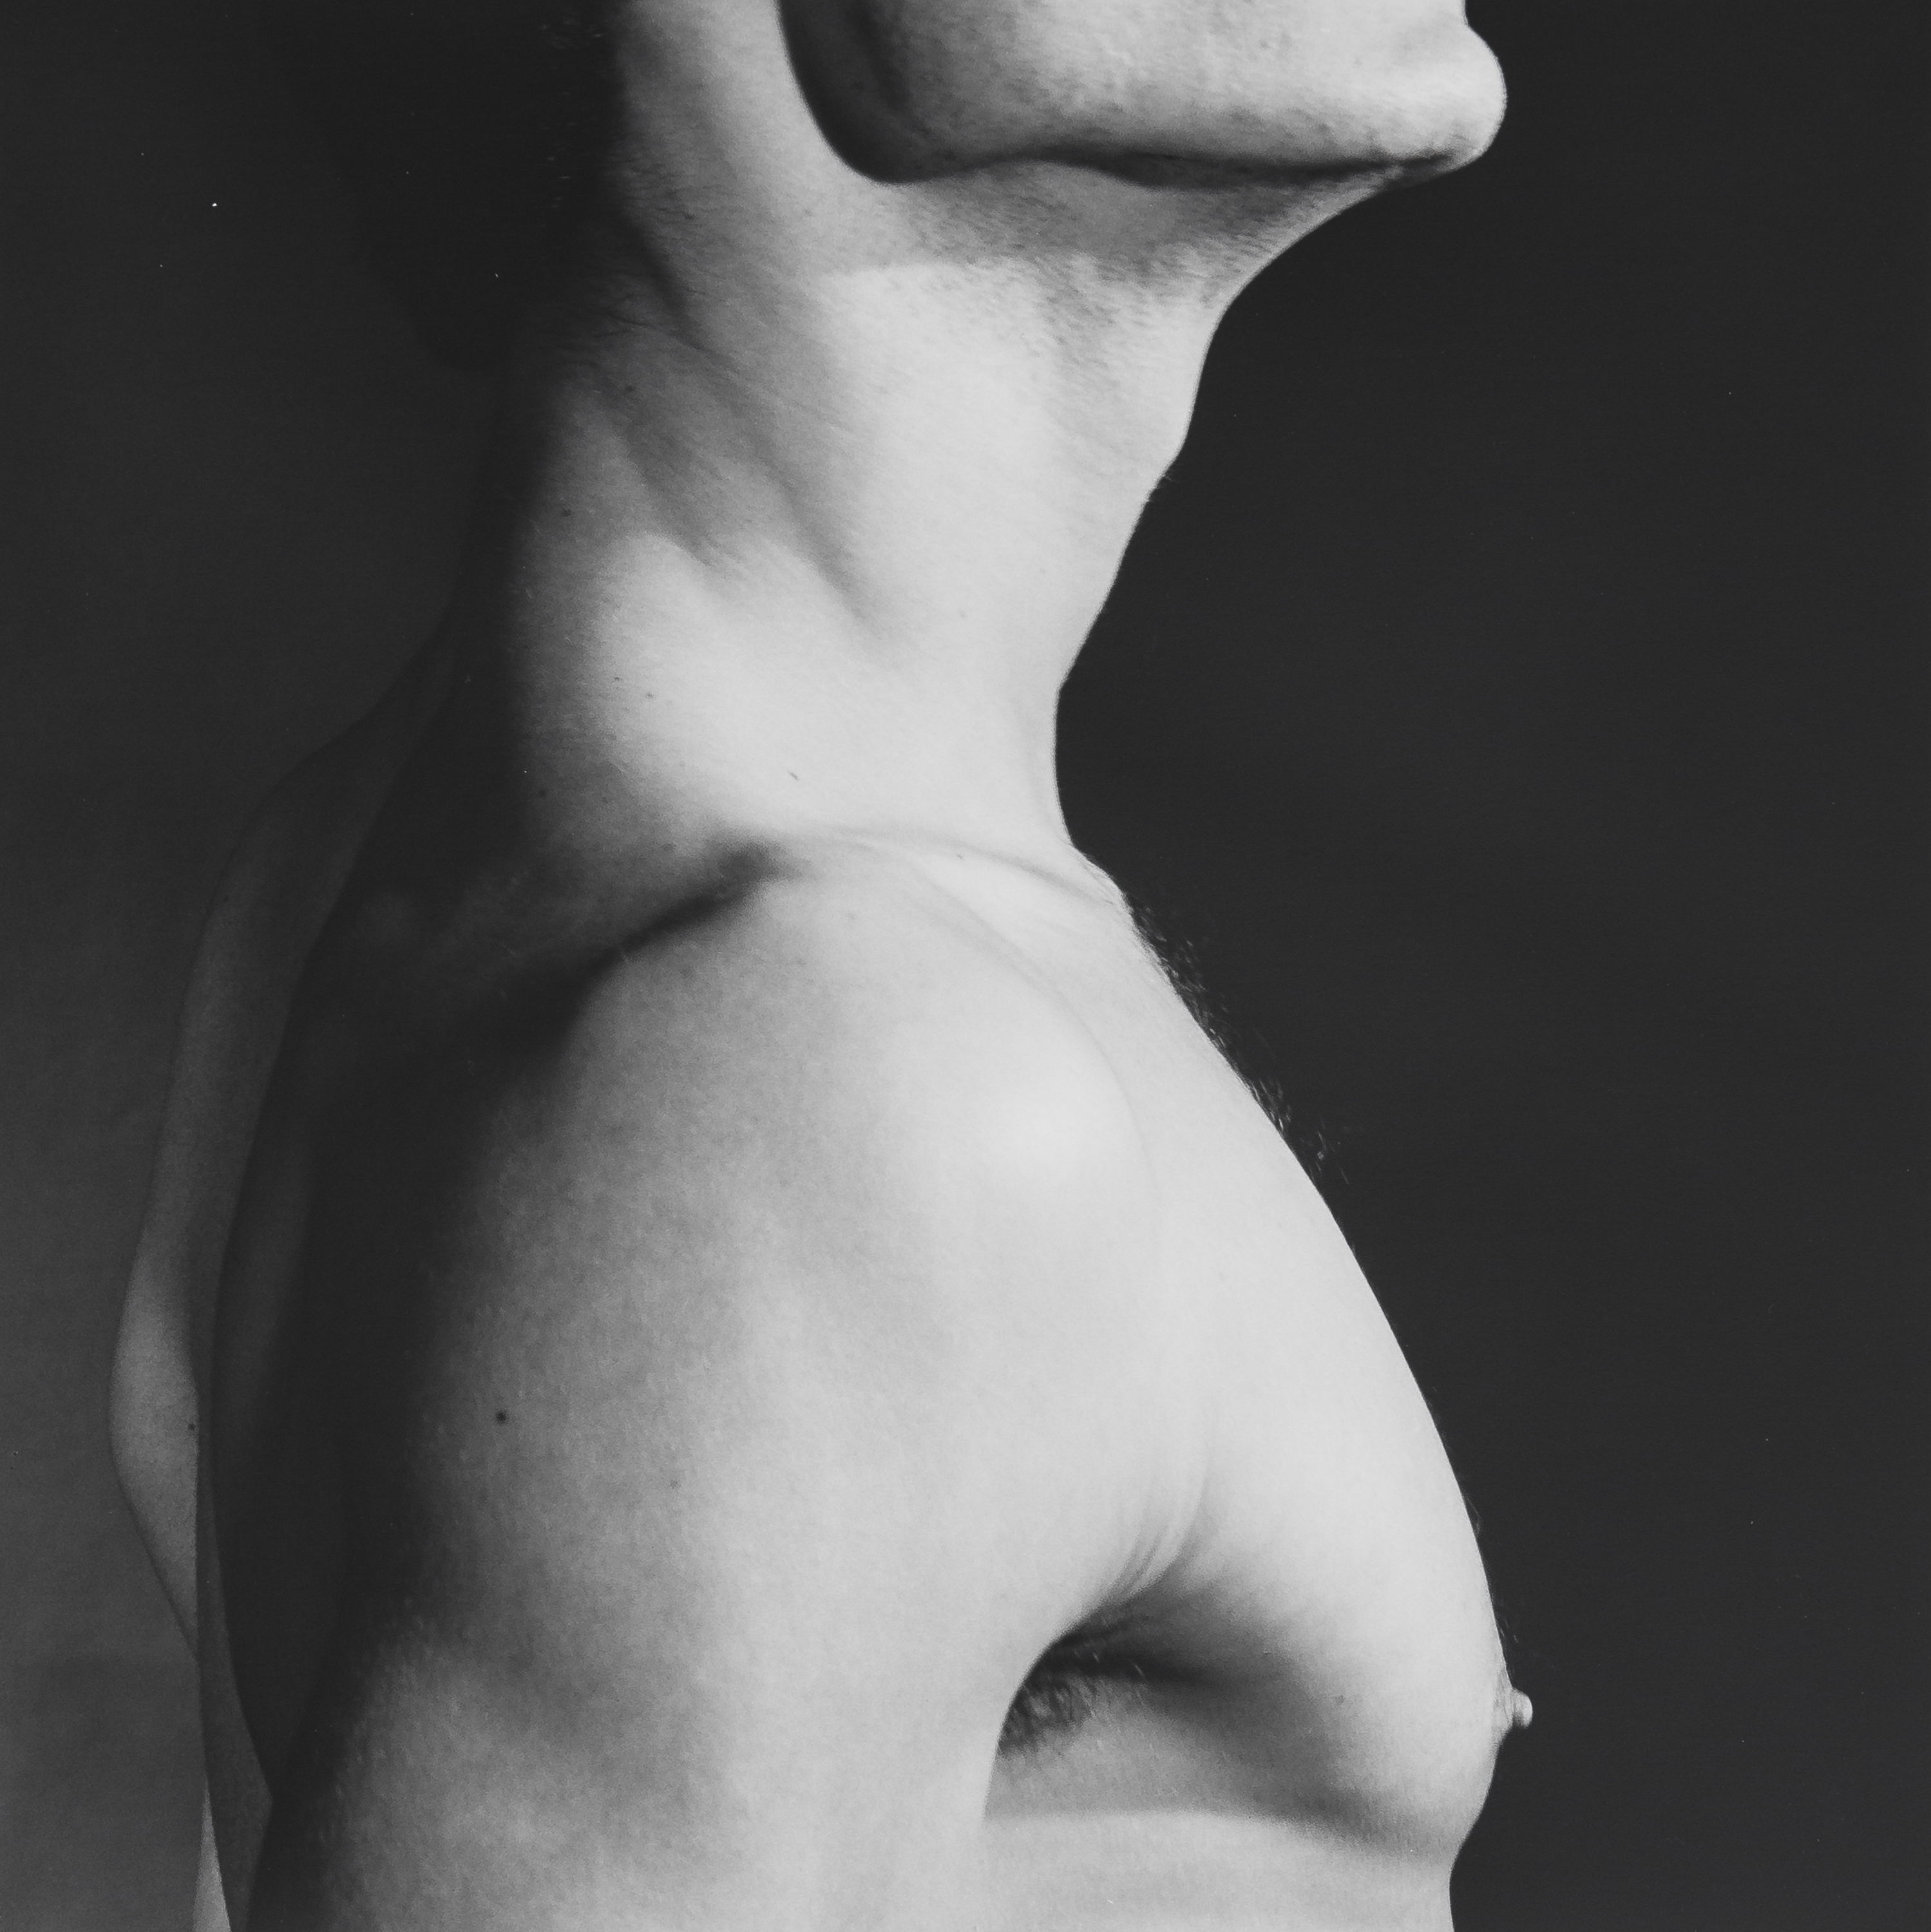 Derrick Cross 1983 mapplethorpe